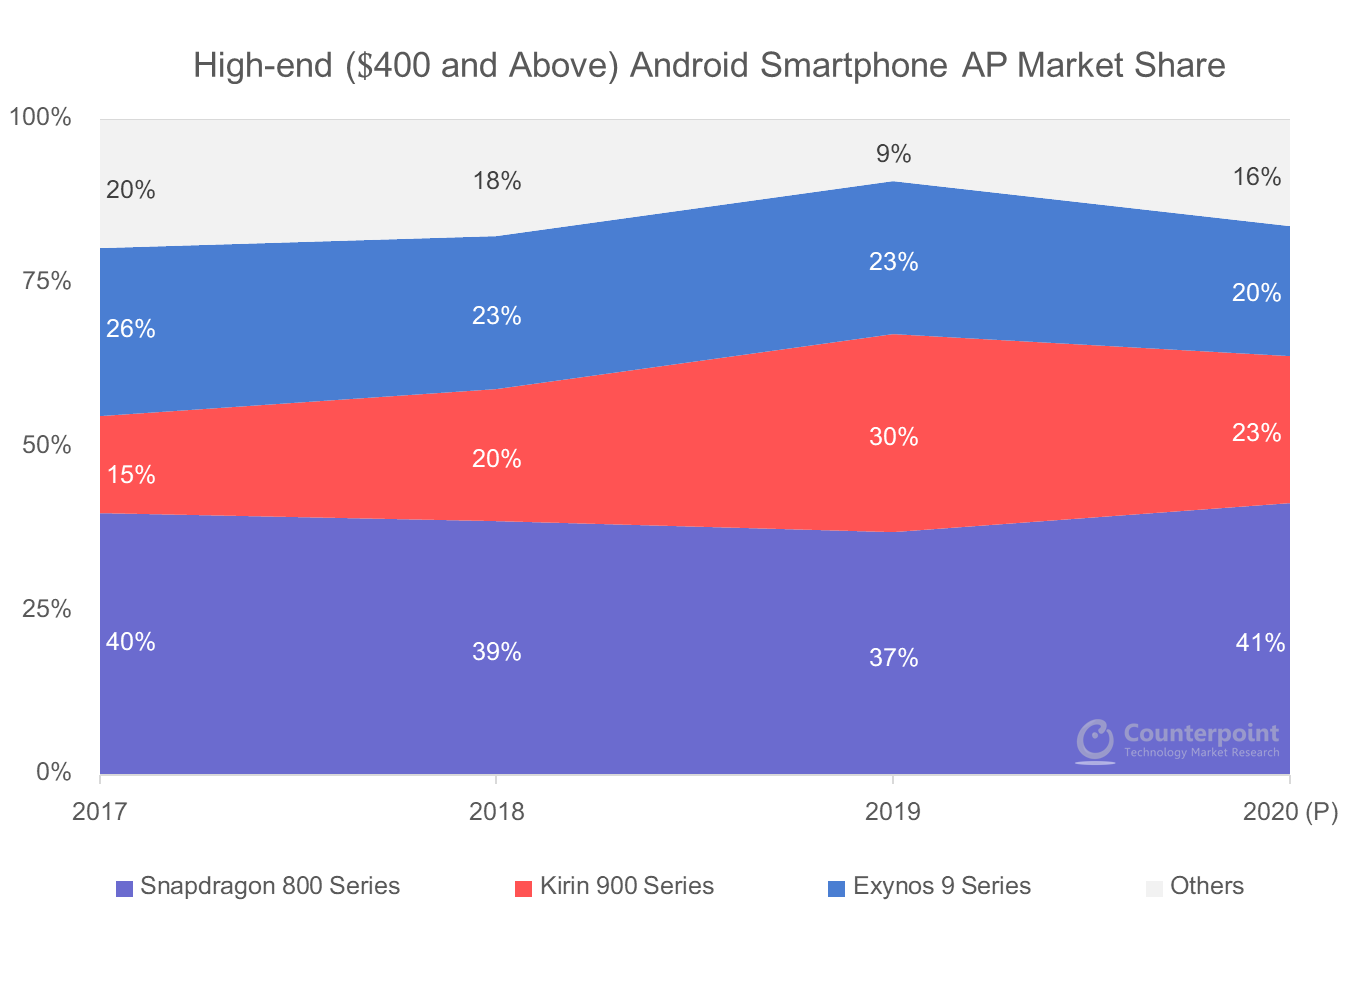 High-end smartphone AP market share